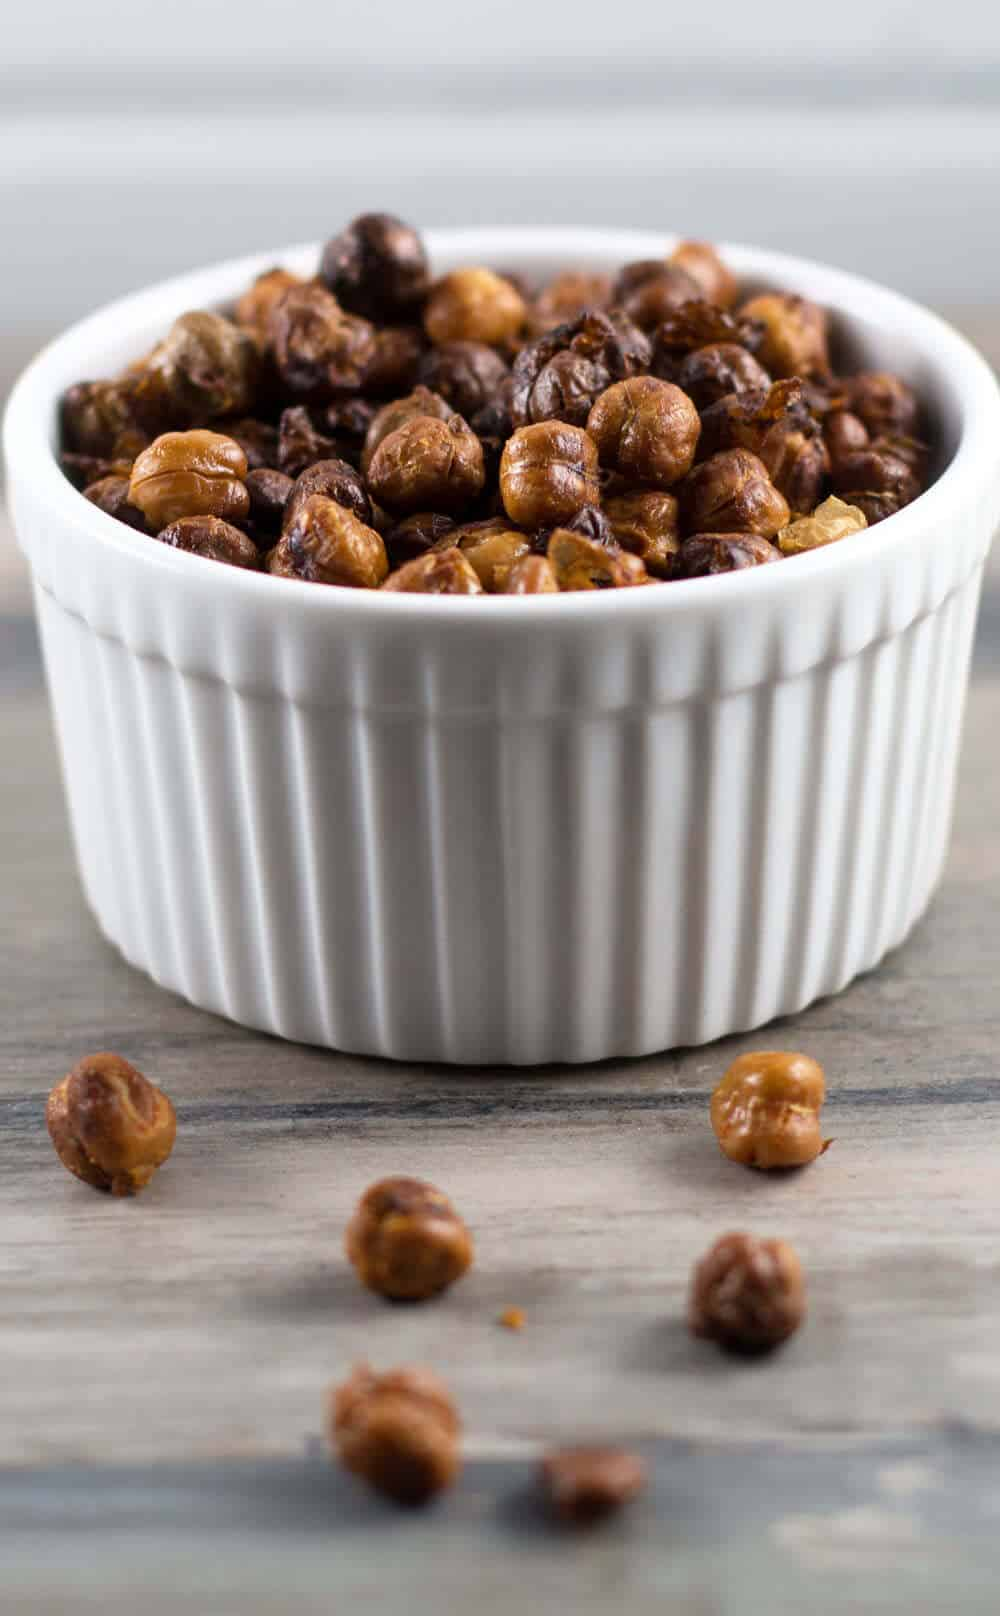 Oven-roasted chickpeas with hot sauce are a fun and healthy snack. | Mother Would Know